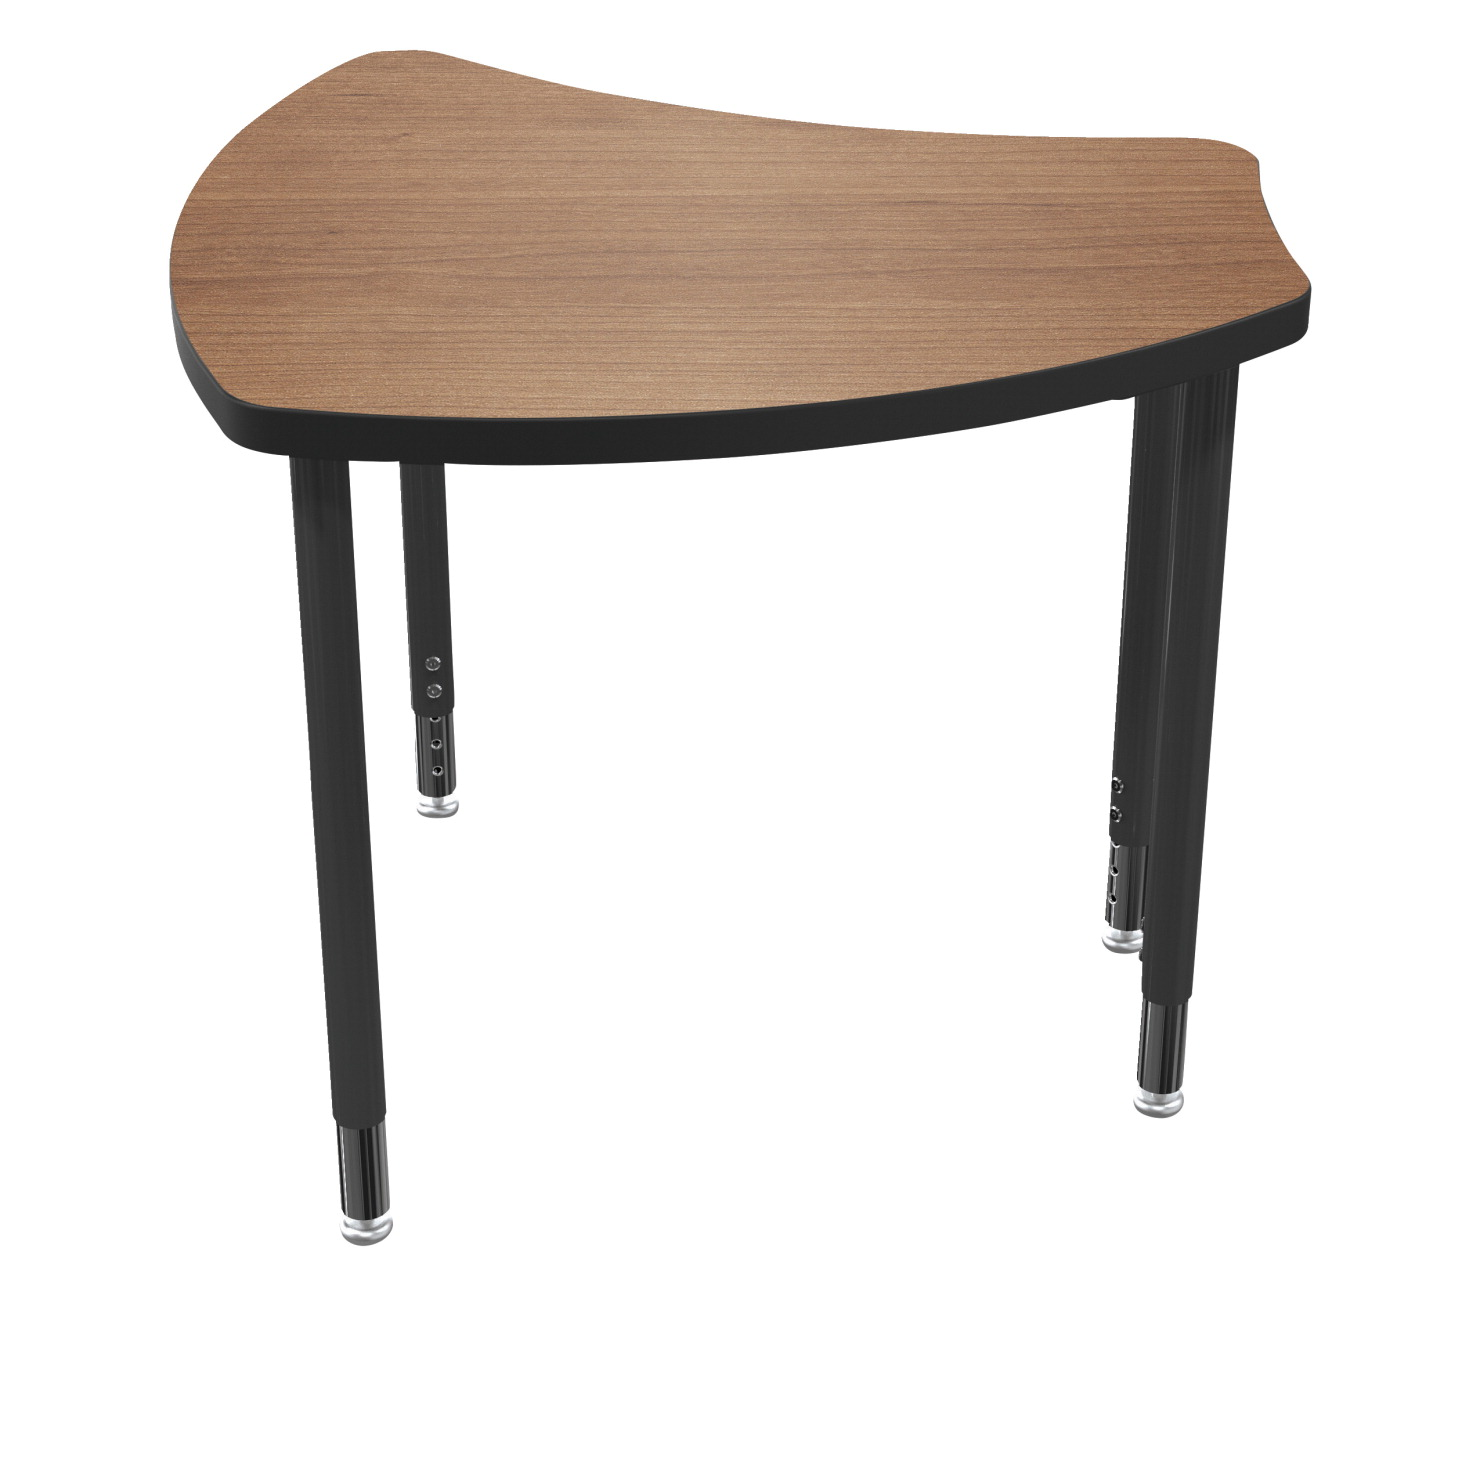 Balt Small Shapes Laminate Top Desk, 27-1/2 x 27-3/4 x 22 to 32 Inches, Various Options